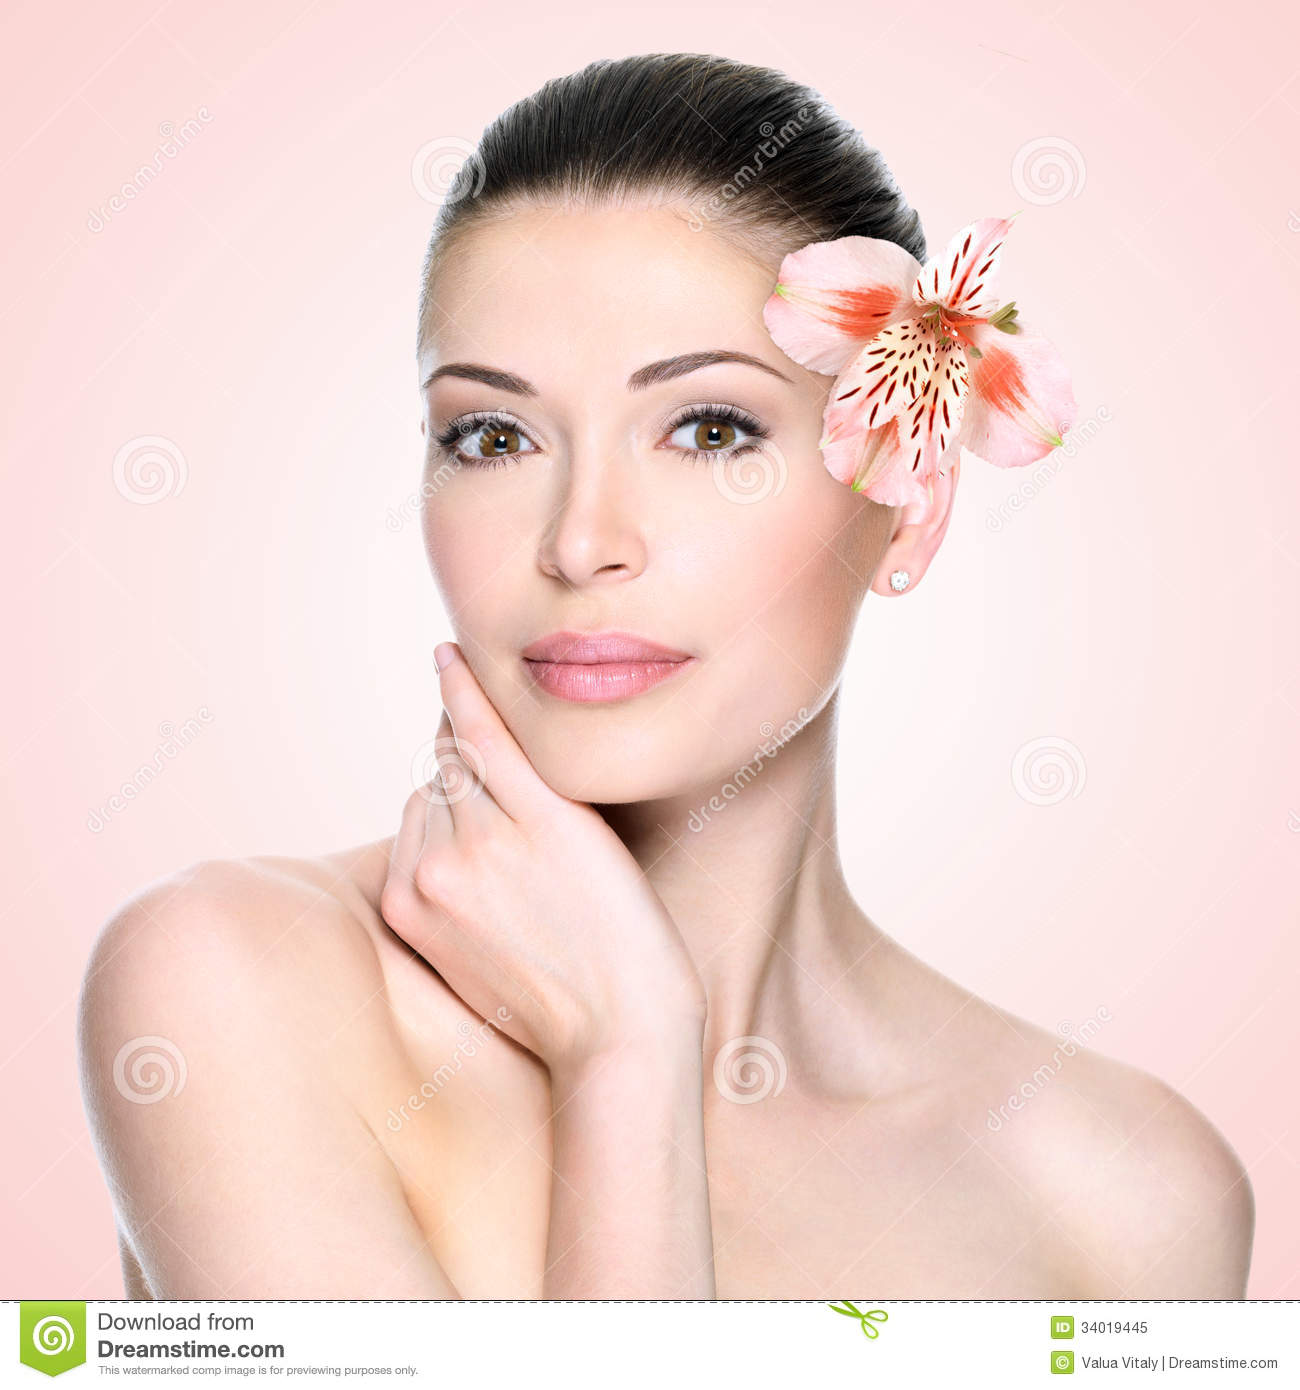 Photo collection free download beautiful woman beautiful women wallpaper free download 6983555 beautiful woman cares for the face royalty free stock images voltagebd Images